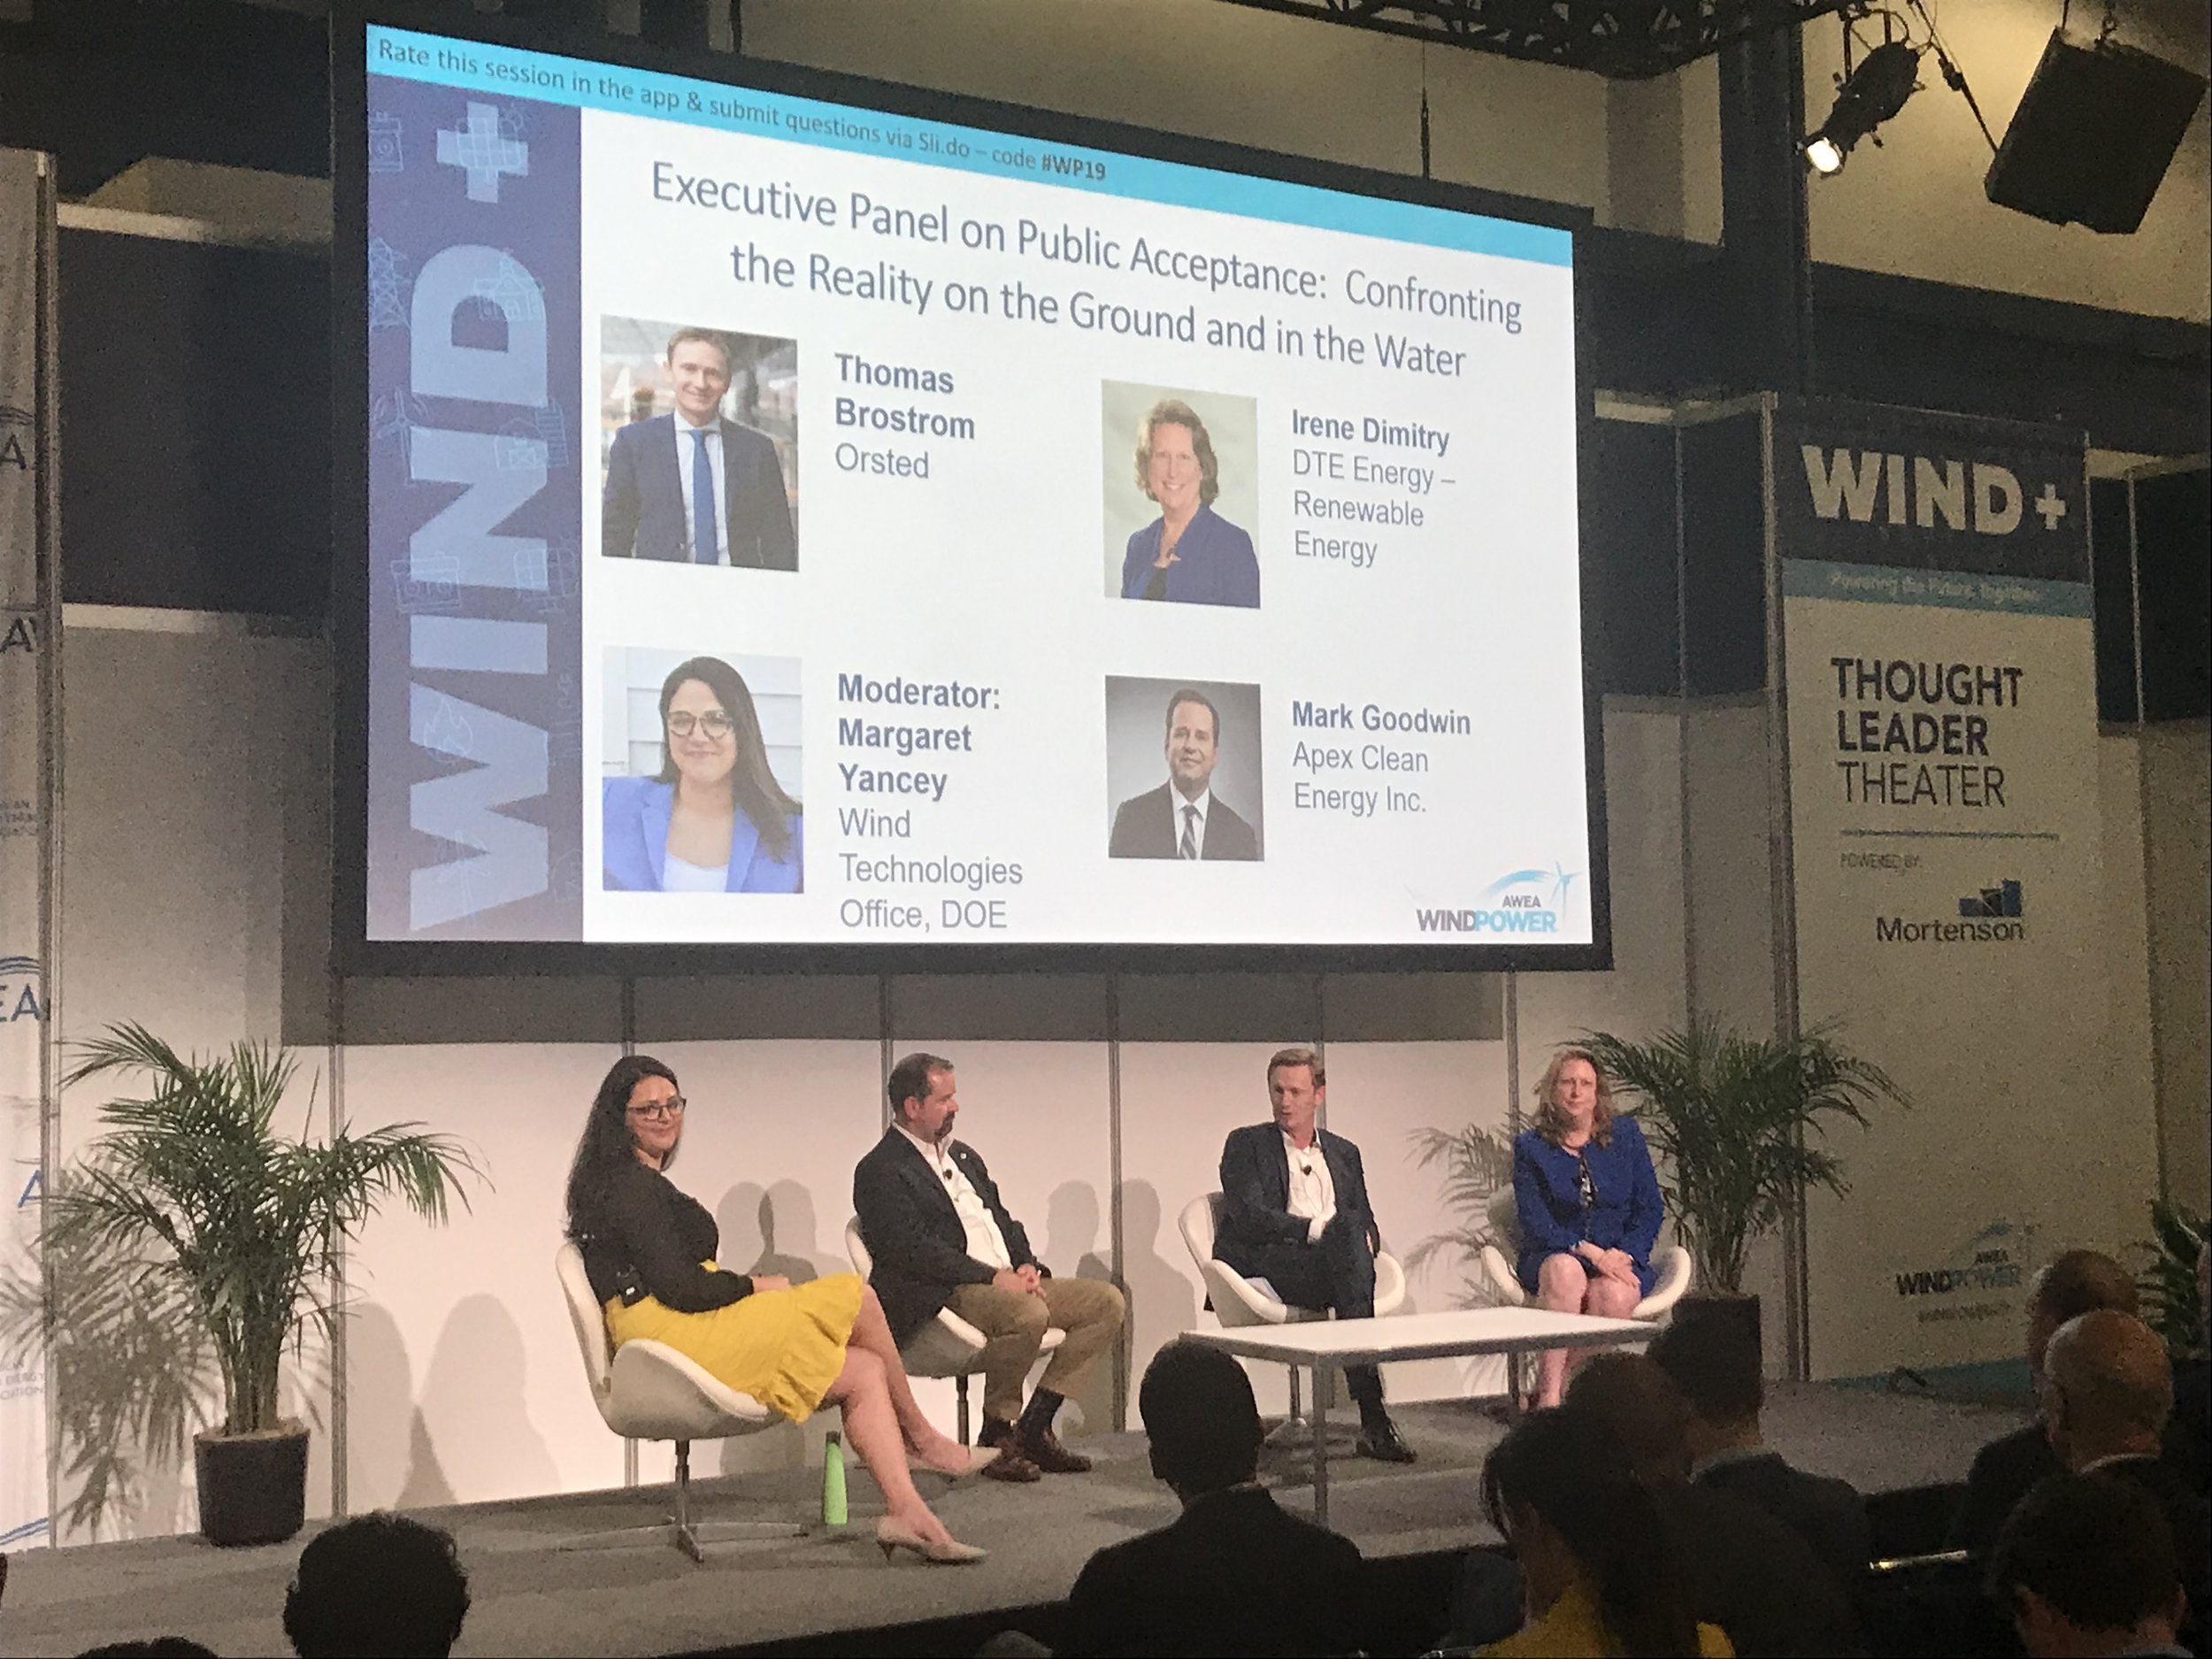 "ACE New York members presenting at WINDPOWER2019 in Houston: ""Confronting the Reality on the Ground and in the Water"" w/ Thomas Brostrom of Orsted, Irene Dimitry DTE Energy, Mark Goodwill of Apex Clean Energy, Moderator Margaret Yancey, Wind Technologies off of the DOE."